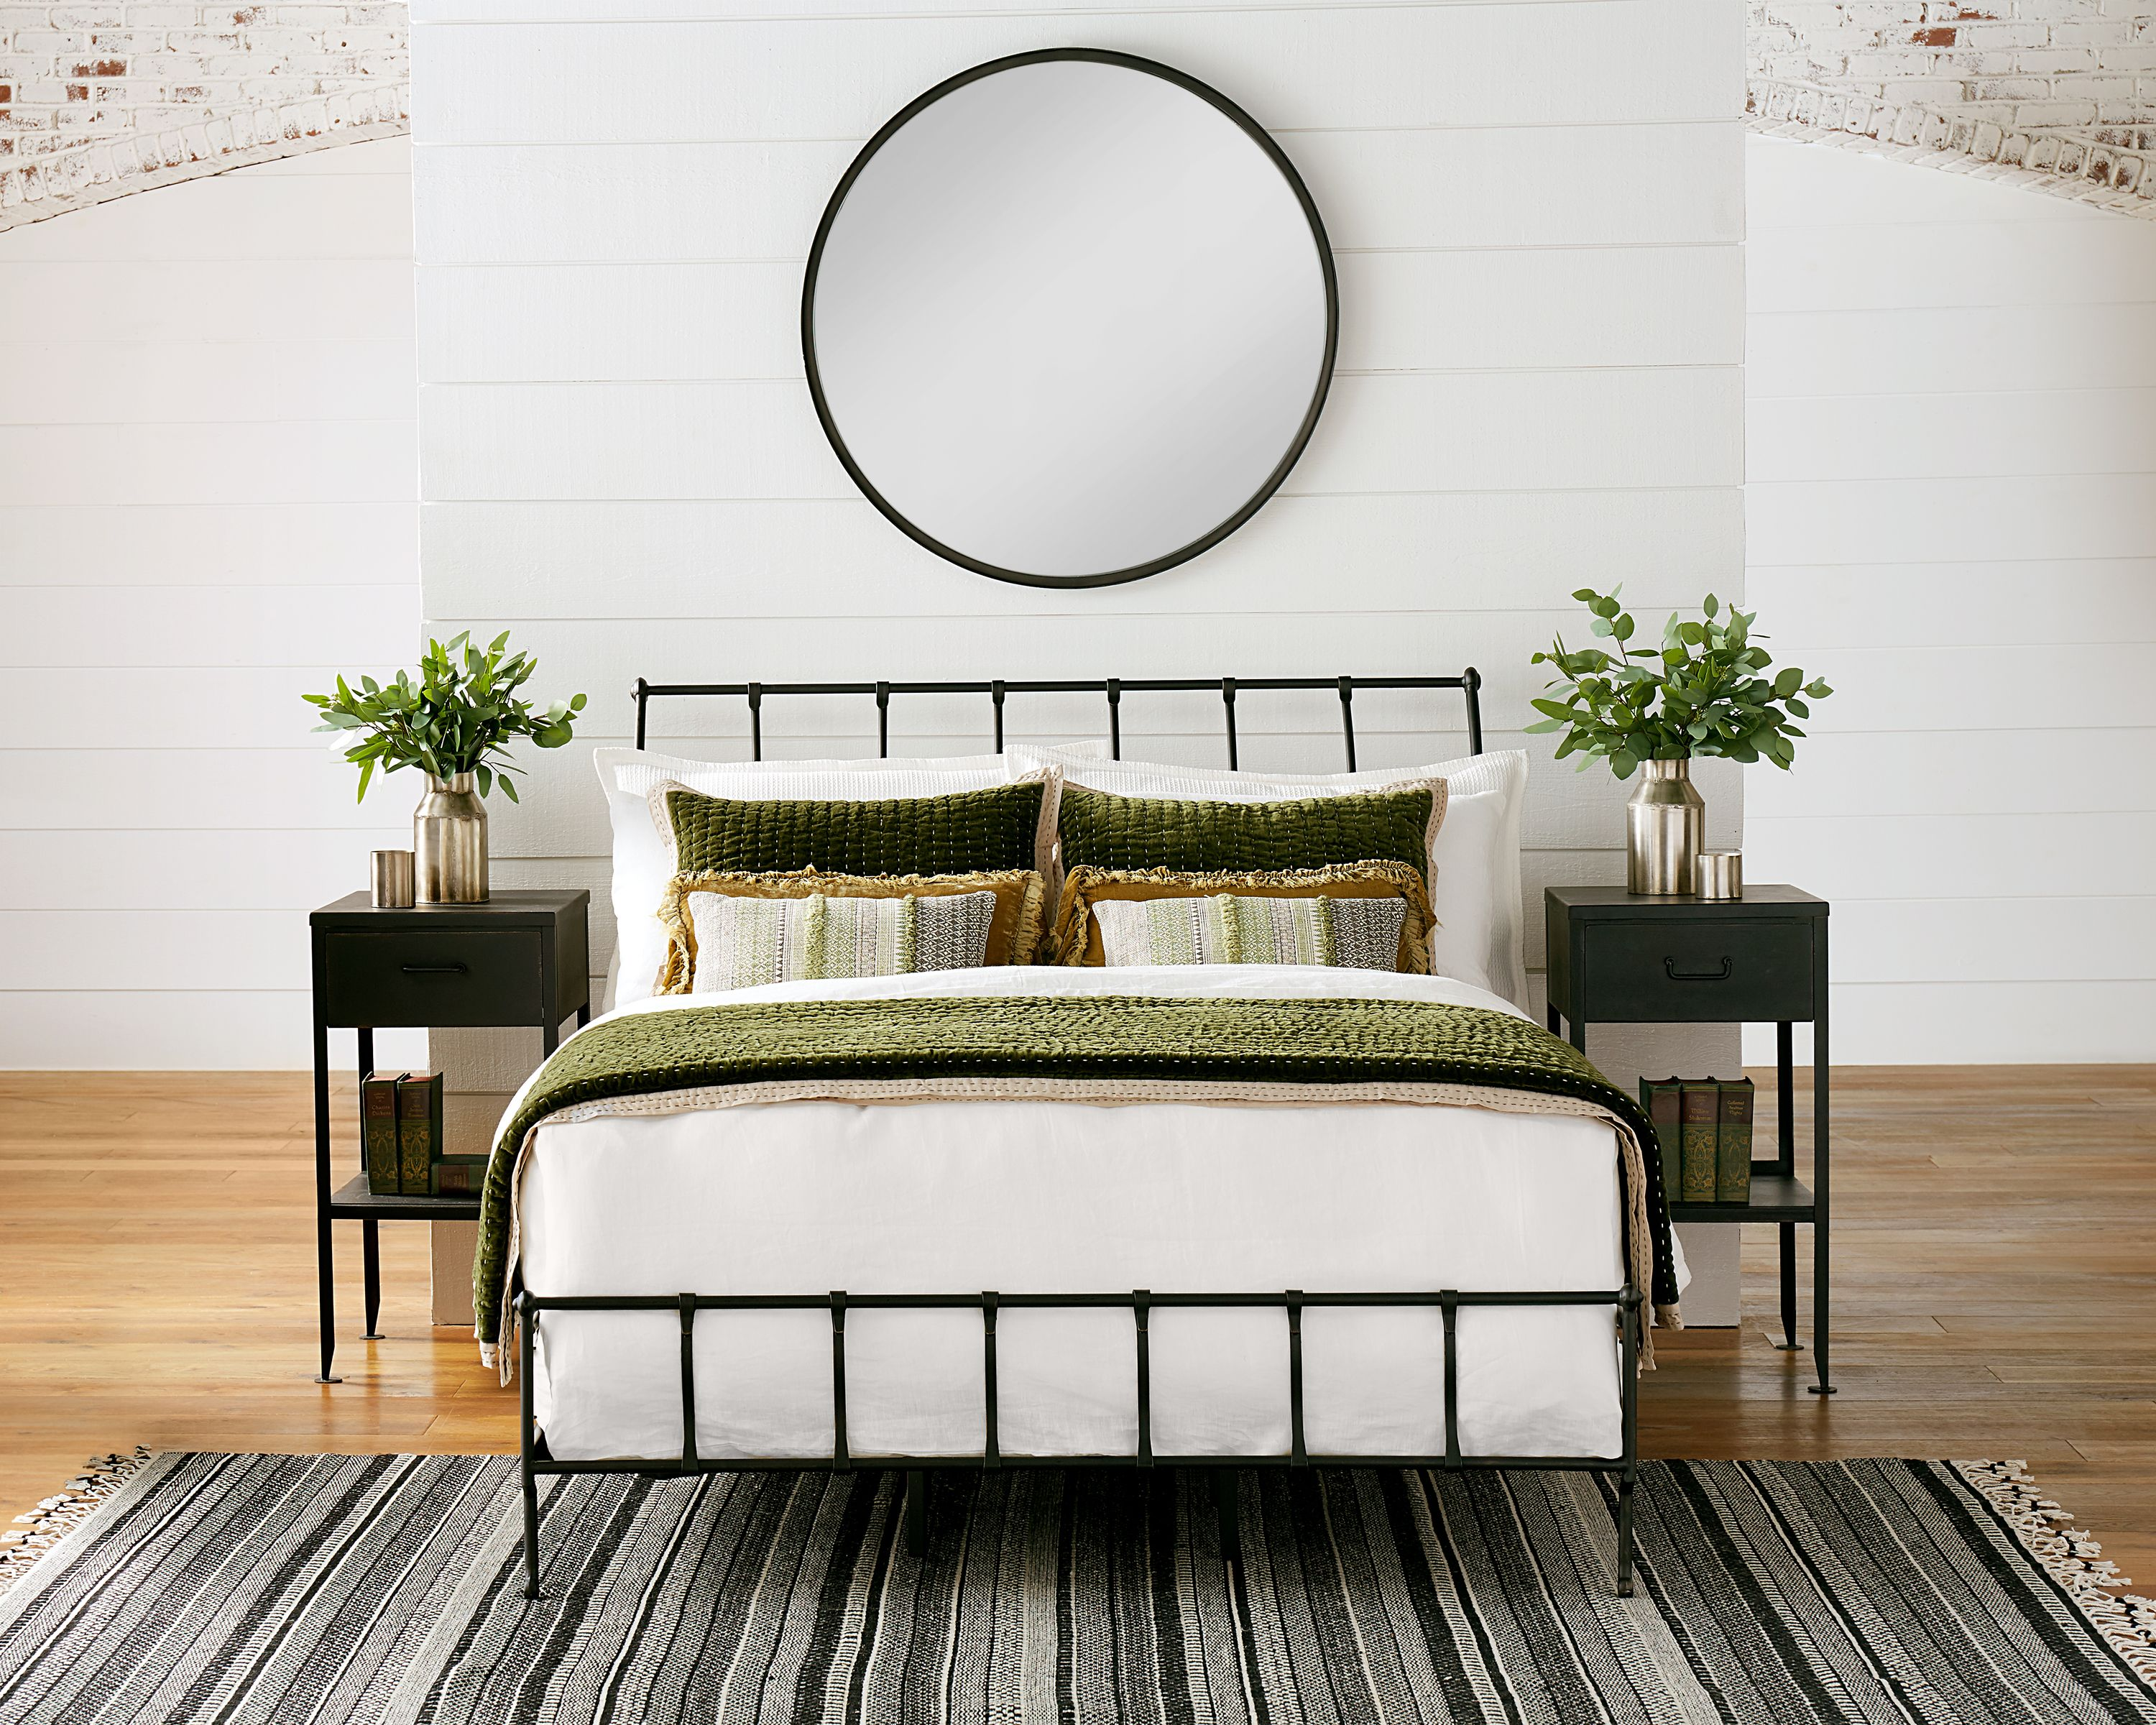 Rake Iron Bed With Metal Utility Table Magnolia Home Bedroom Sets Iron Bed